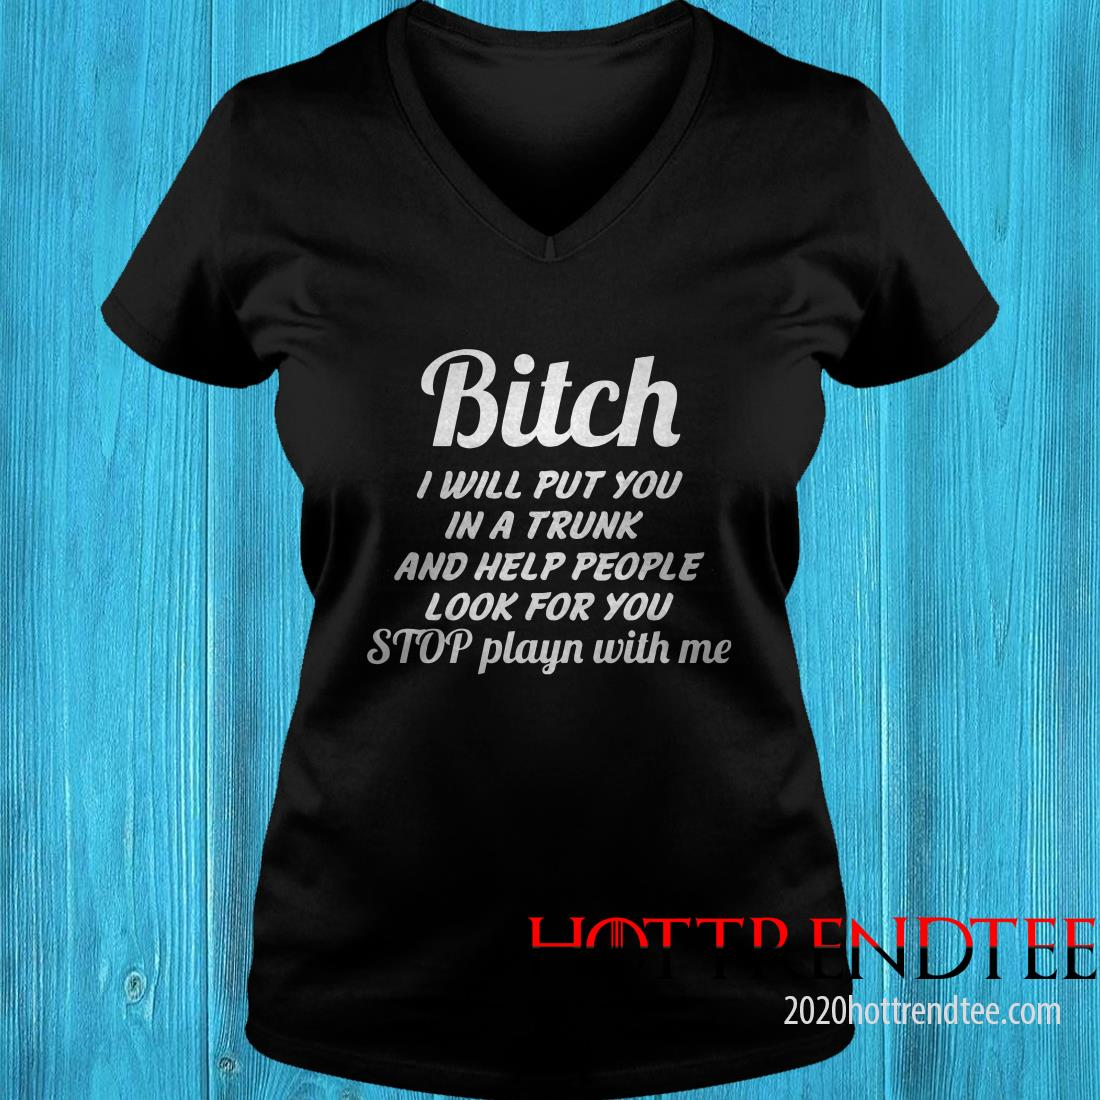 Bitch I Will Put You In A Trunk And Help People Look For You Stop Playn With Me Women's T-Shirt